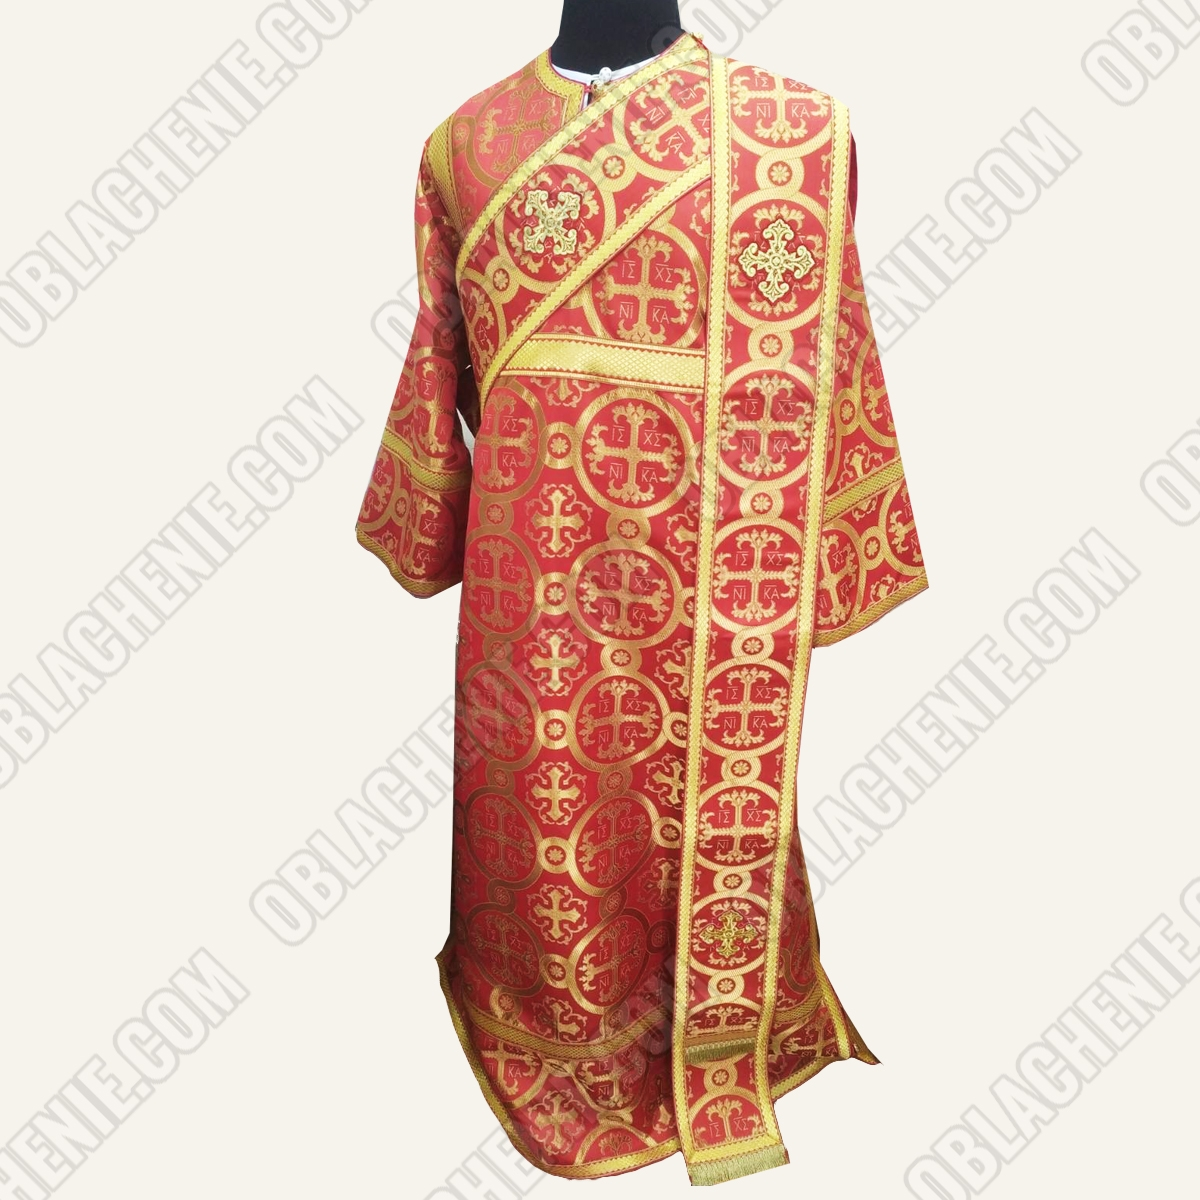 DEACON'S VESTMENTS 11092